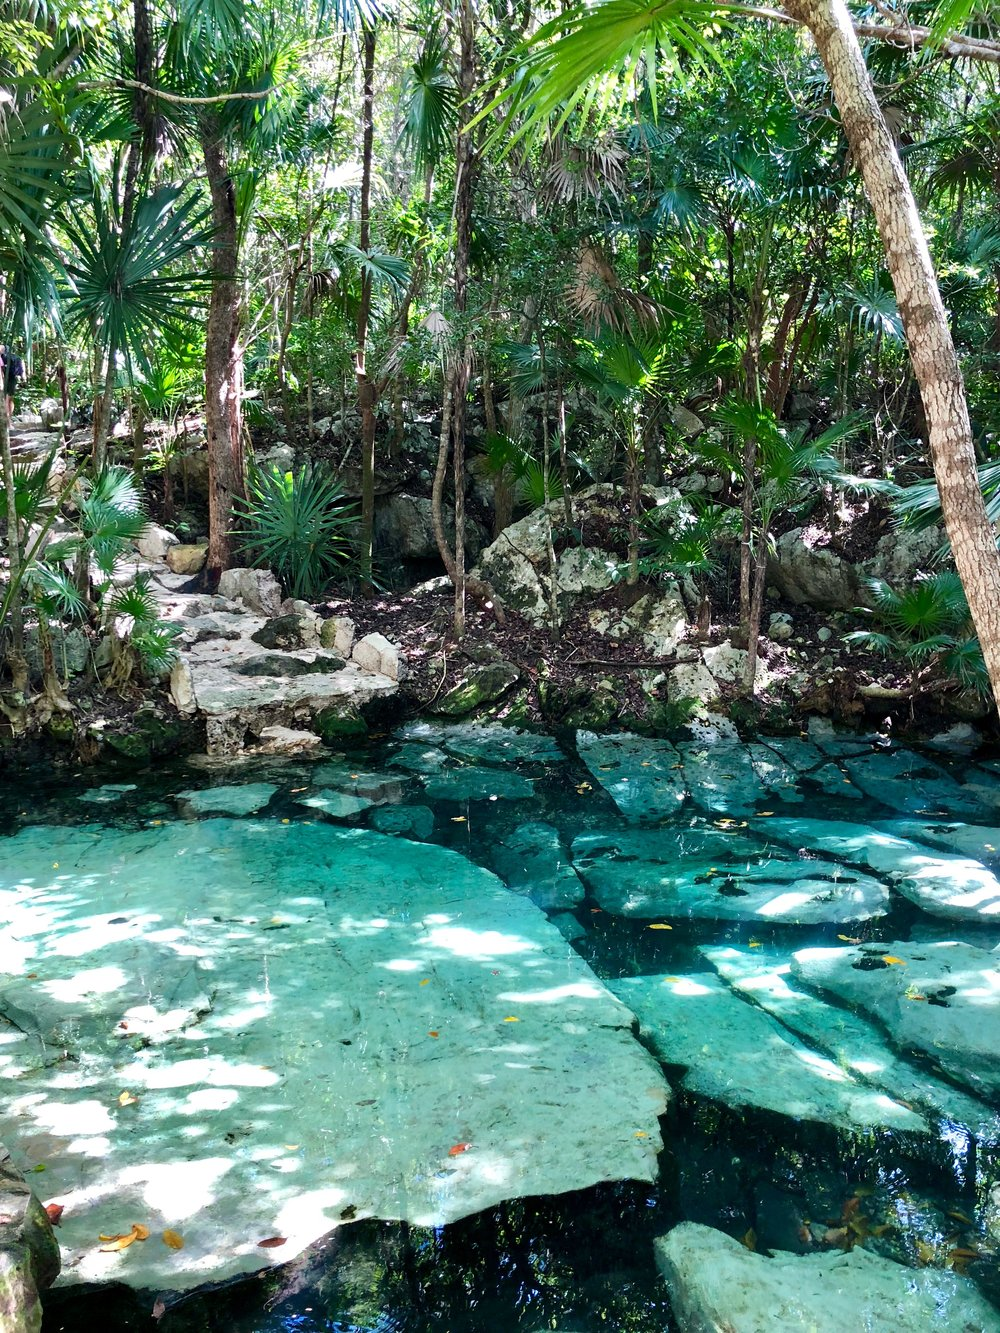 Cenote Azul located 30 minutes north of Tulum.